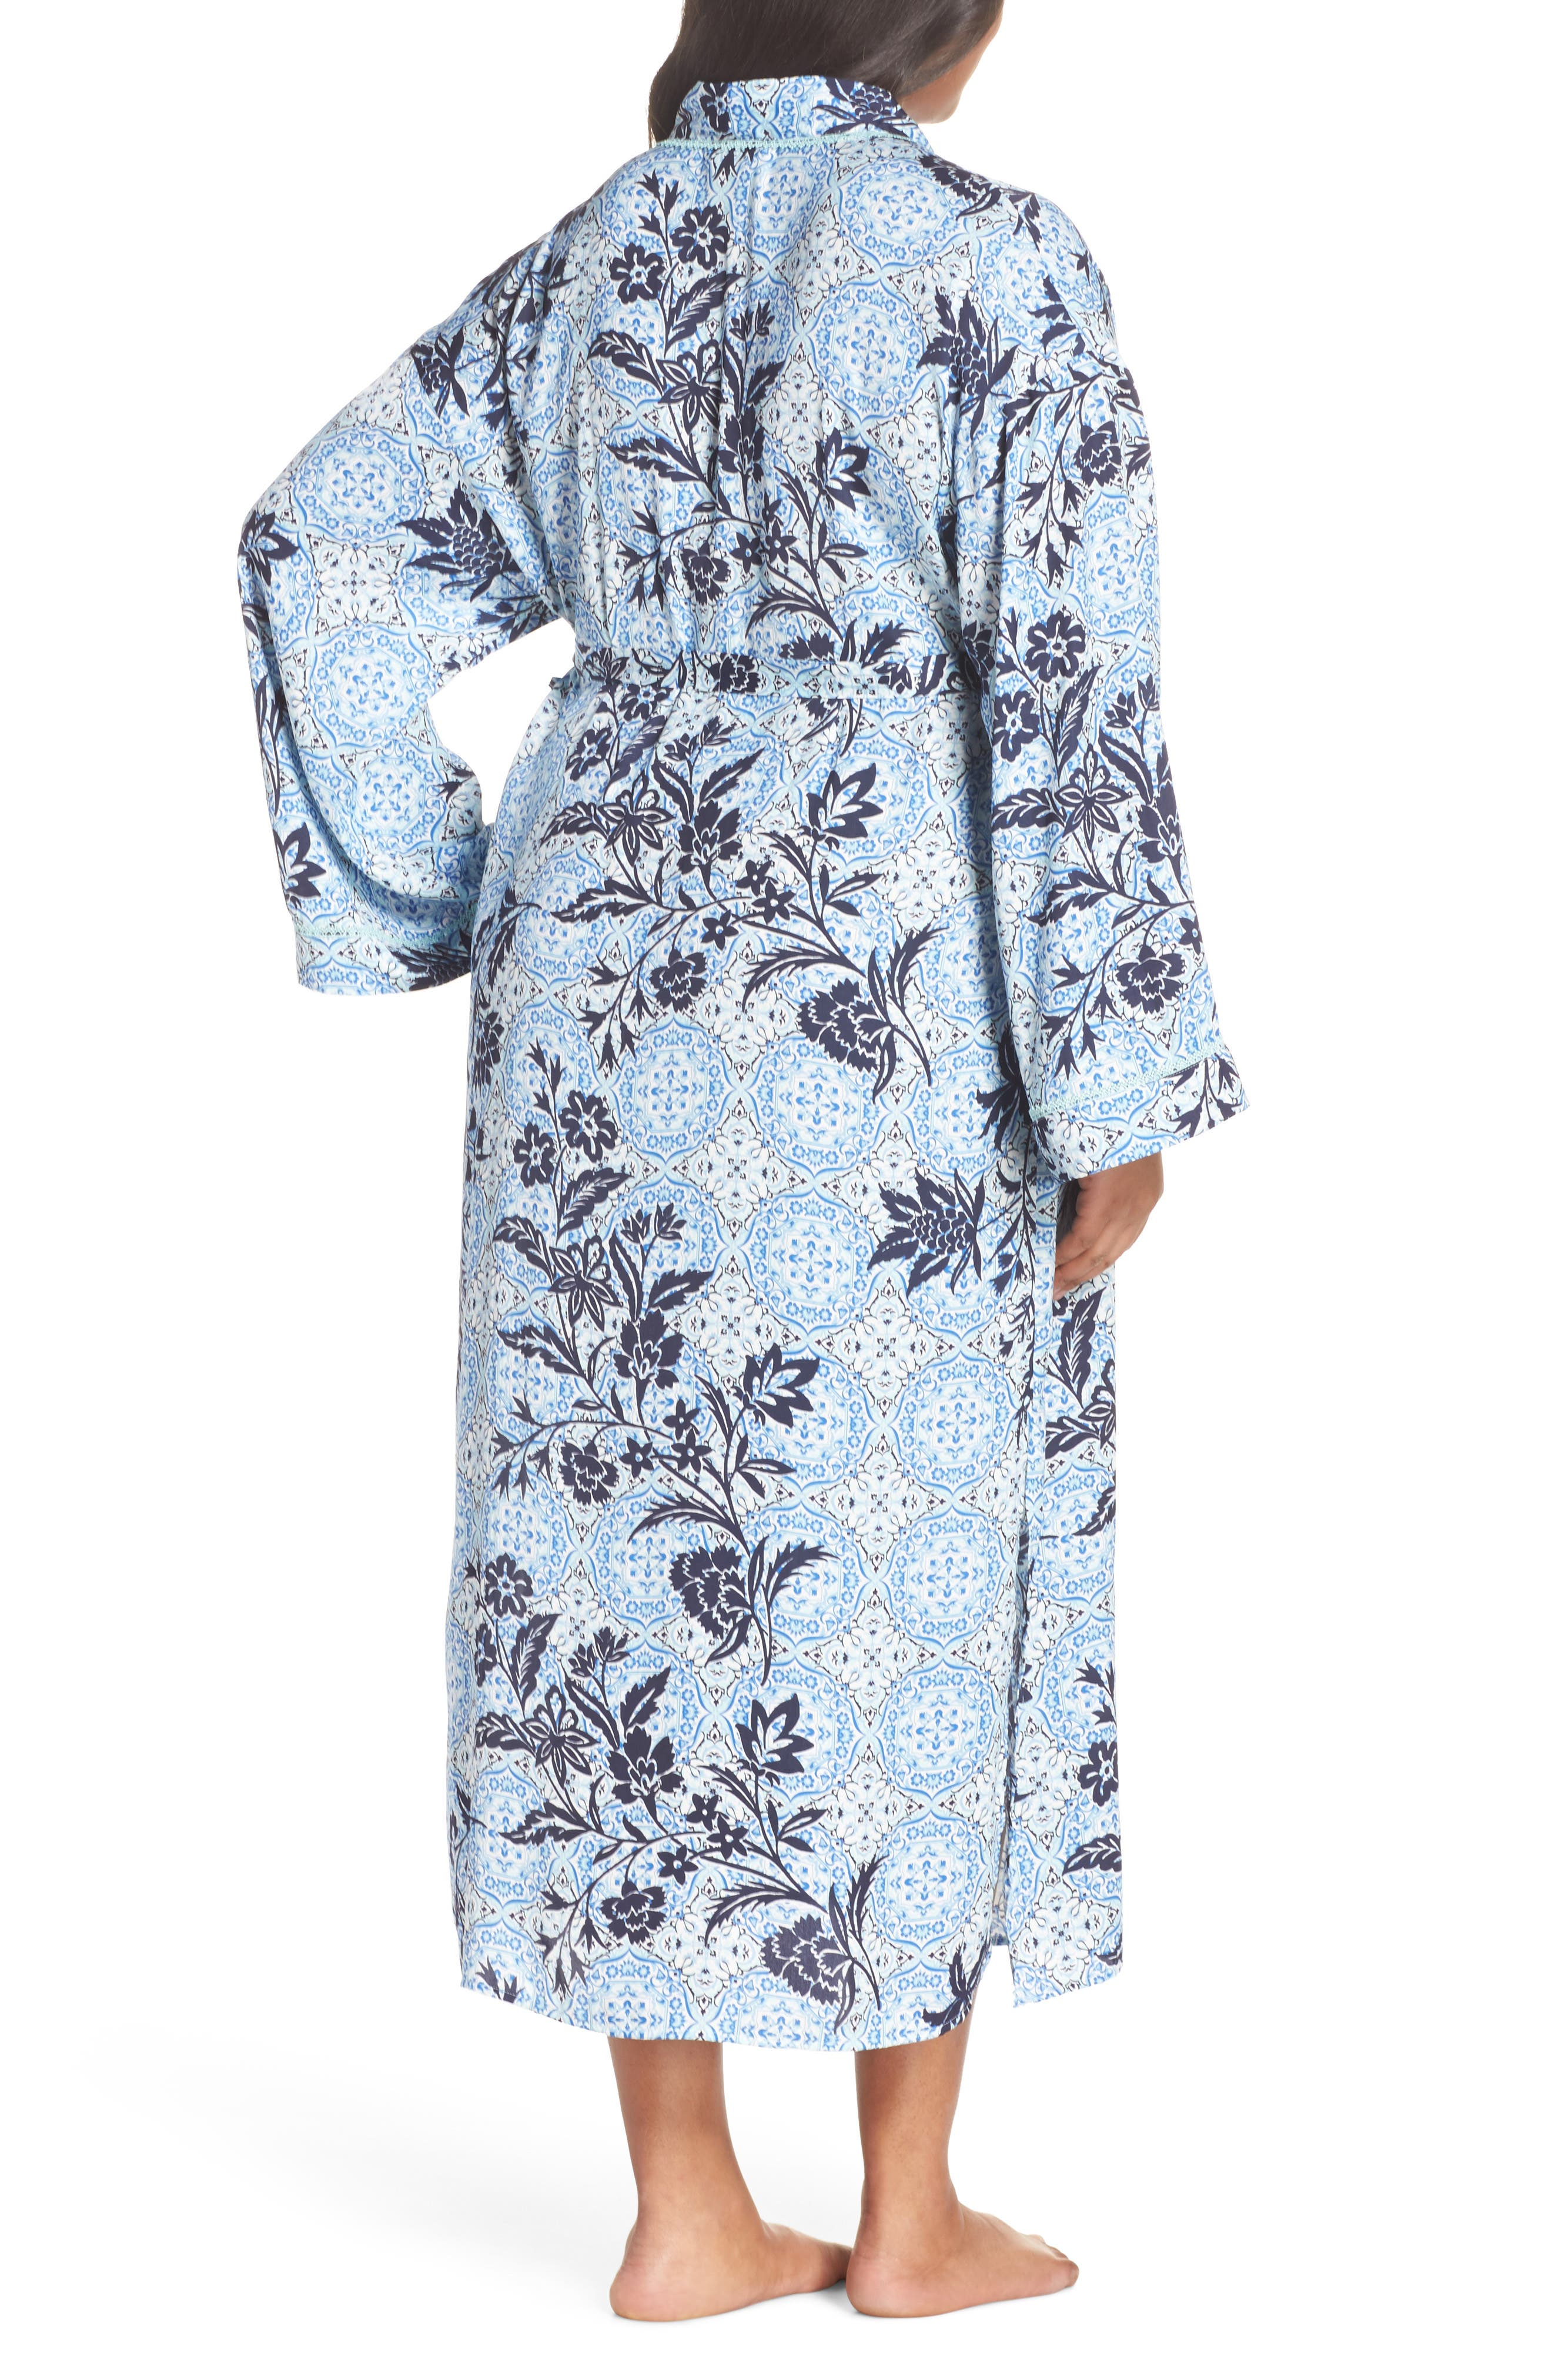 Sweet Dreams Satin Robe,                             Alternate thumbnail 2, color,                             Blue Palace Tile Floral